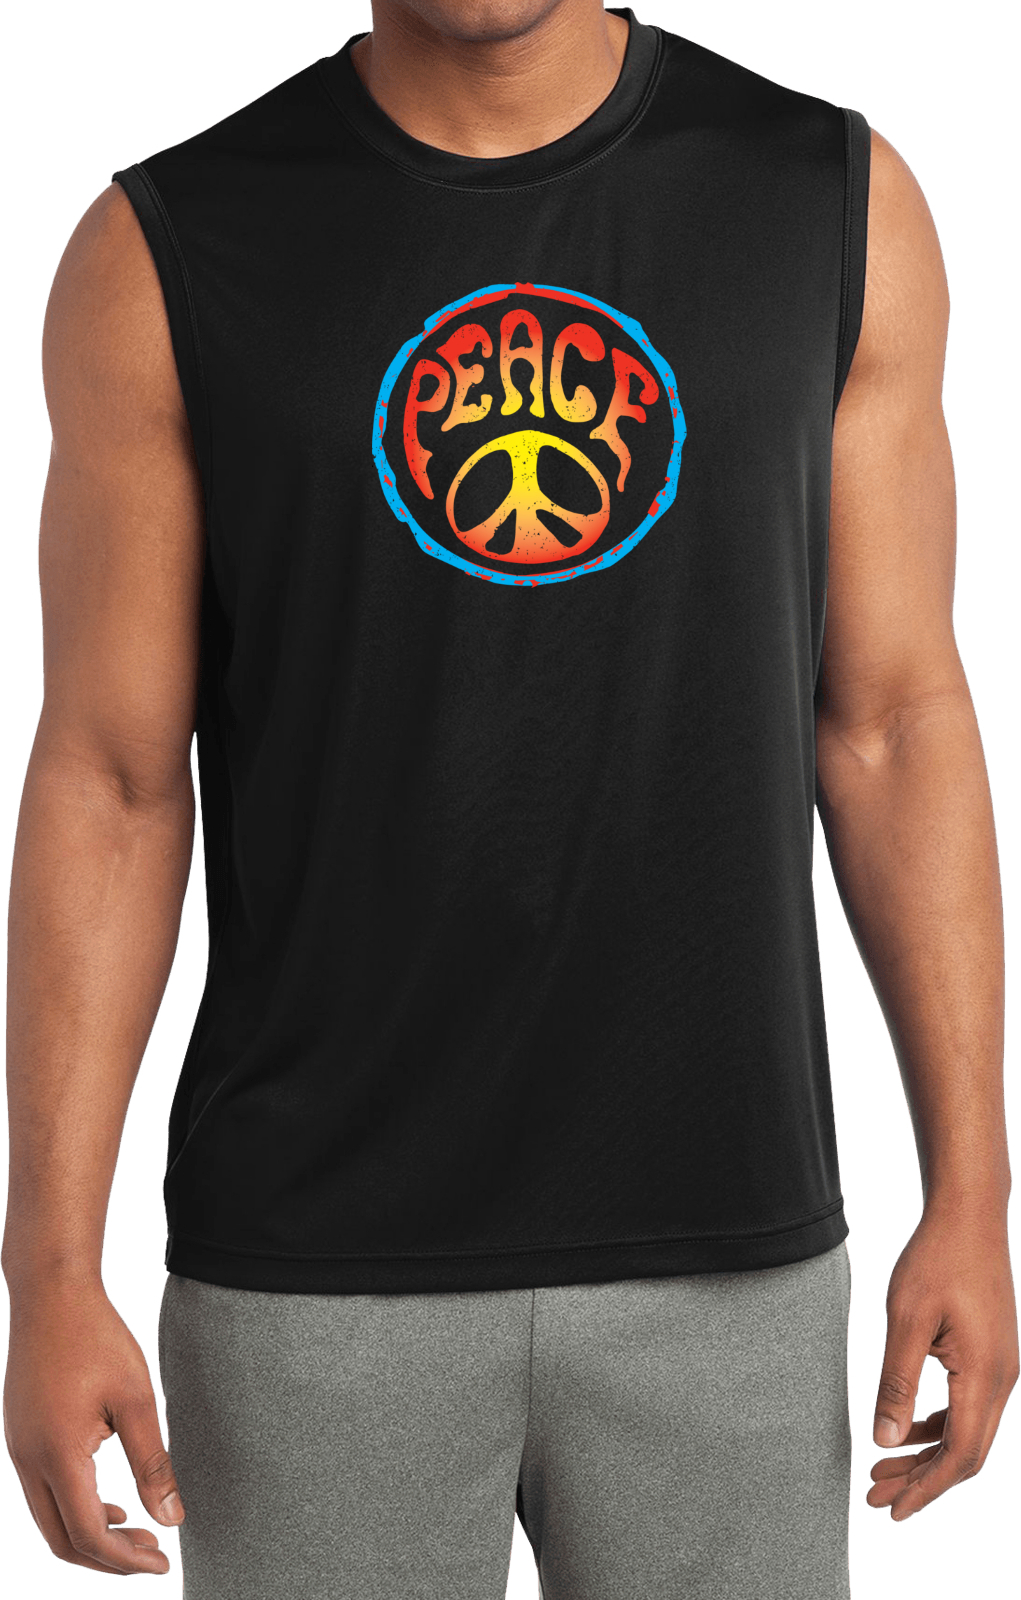 Mens shirt psychedelic peace sleeveless moisture wicking for Sweat wicking t shirts